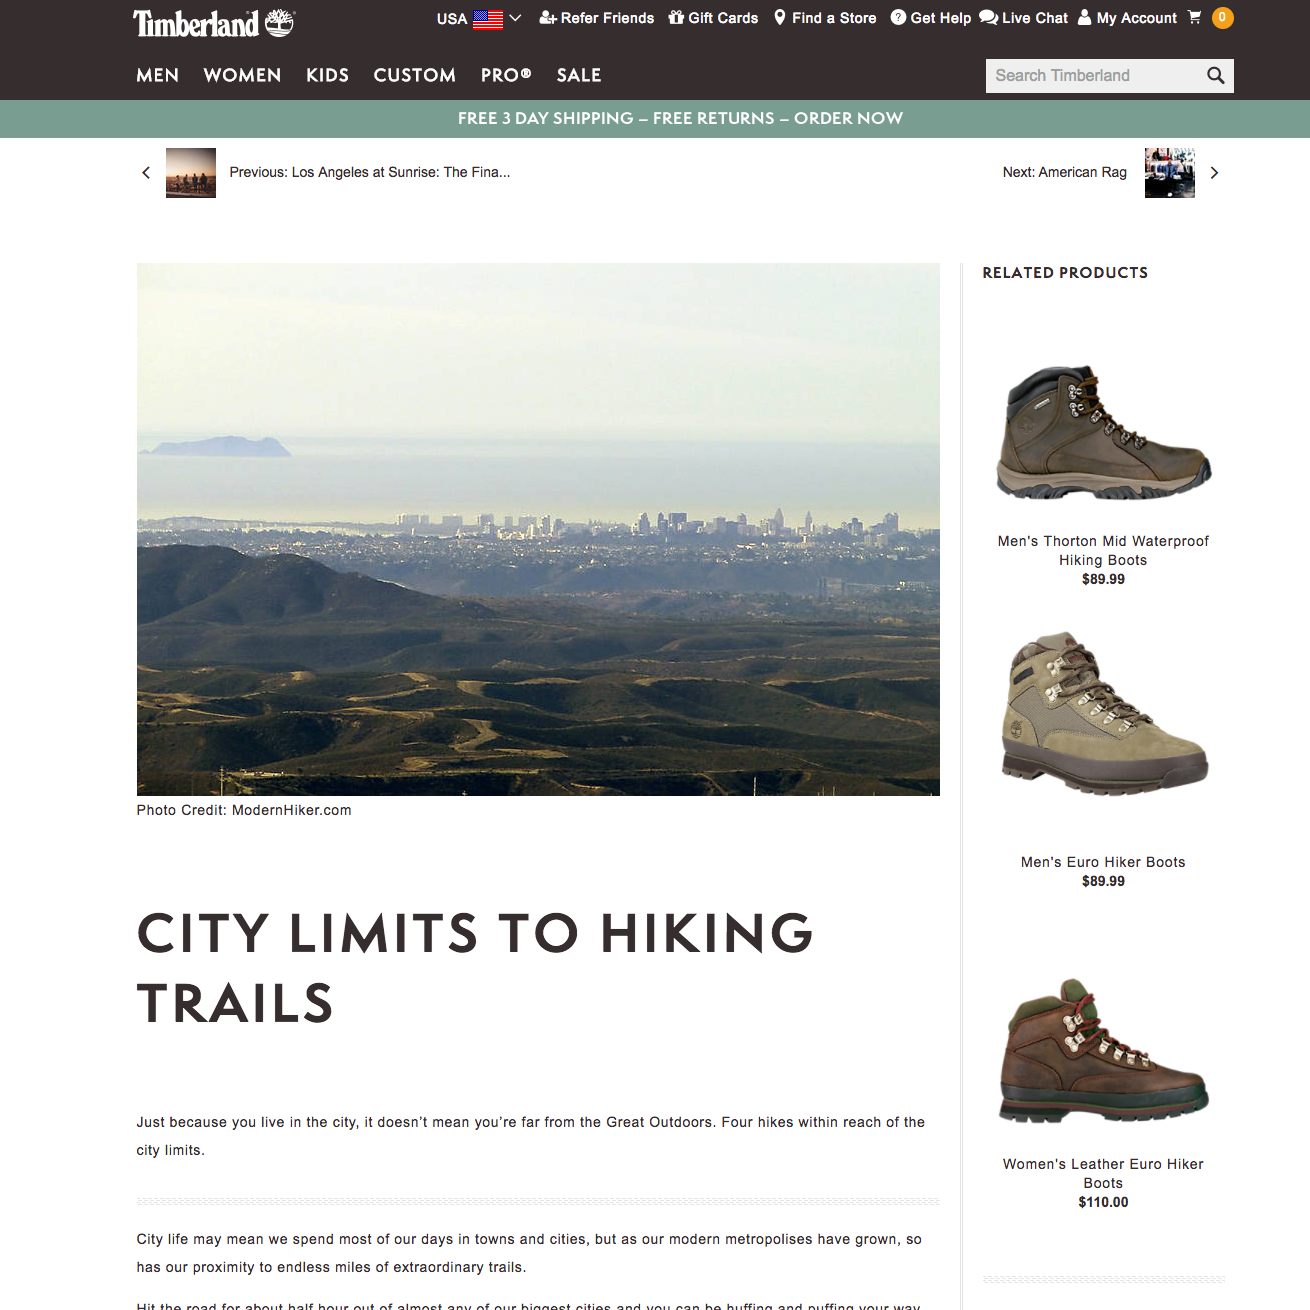 City Limits to Hiking Trails